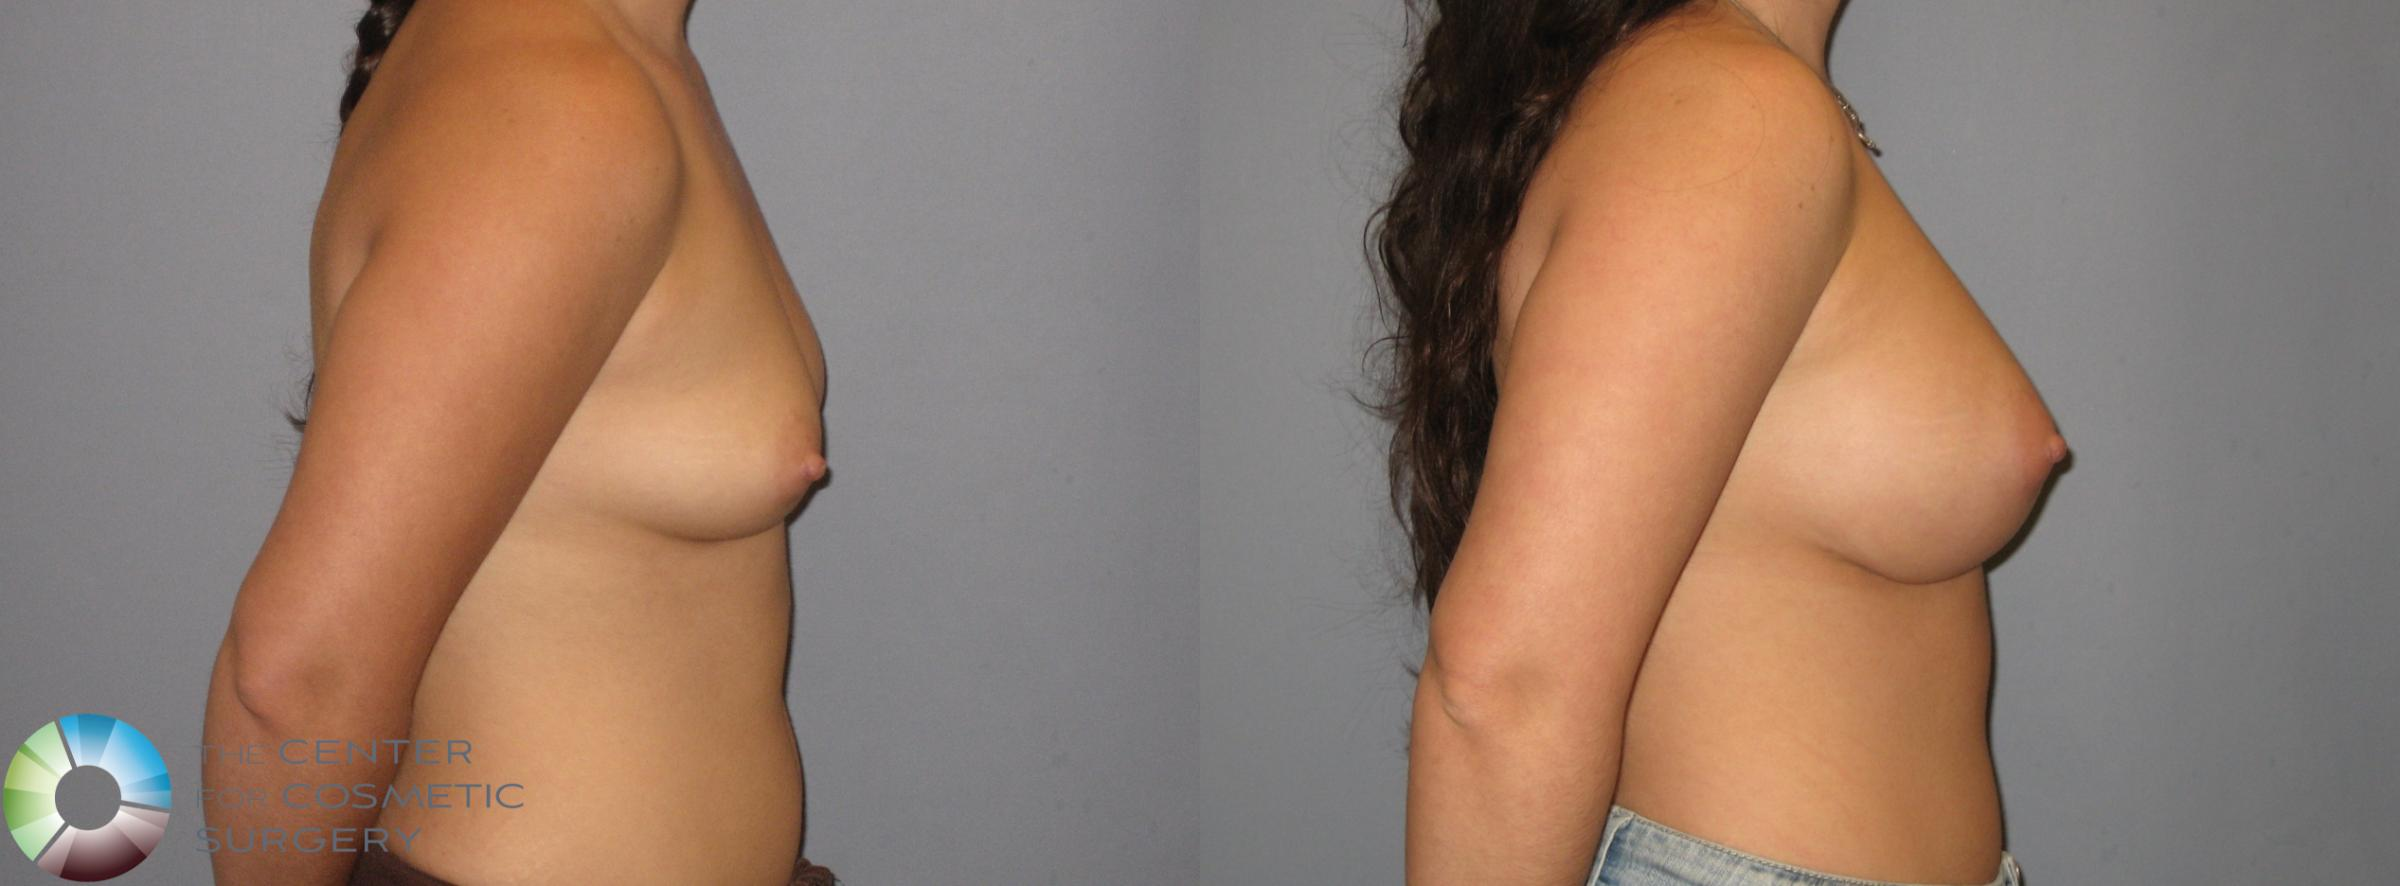 Breast Augmentation Case 183 Before & After View #2 | Golden, CO | The Center for Cosmetic Surgery